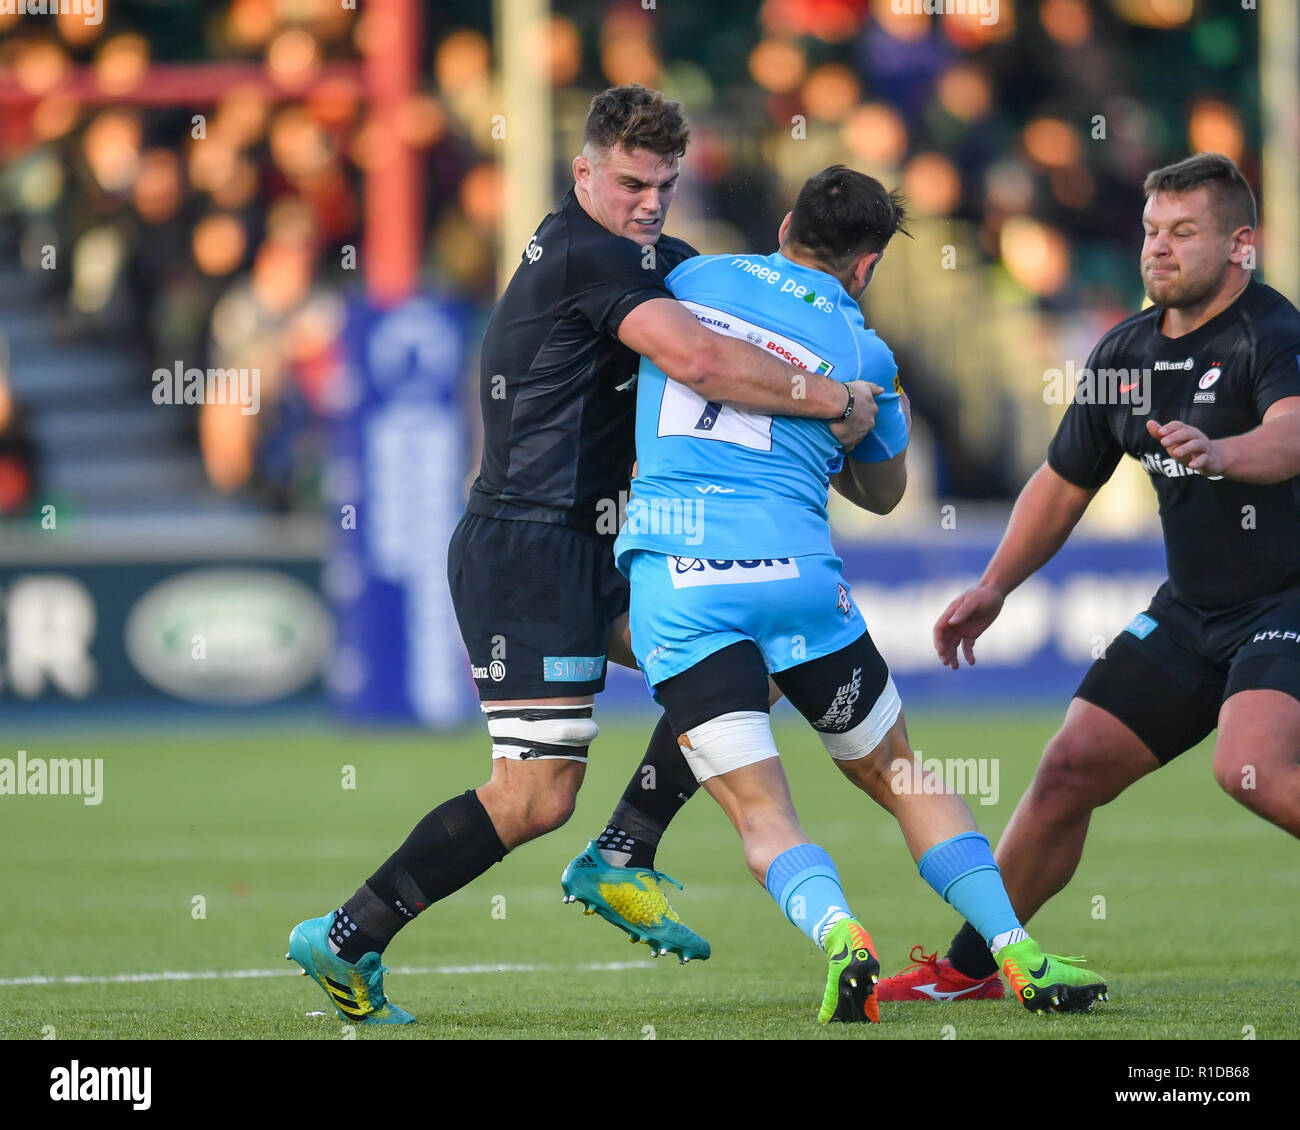 London, UK. 11th Nov 2018. Matti Williams of Worcester Warriors is tackled during Premiership Rugby Cup Round 3 match between Saracens and Worcester Warriors at Allianz Park on Sunday, 11 November 2018. LONDON ENGLAND.  (Editorial use only, license required for commercial use. No use in betting, games or a single club/league/player publications.) Credit: Taka Wu/Alamy Live News - Stock Image